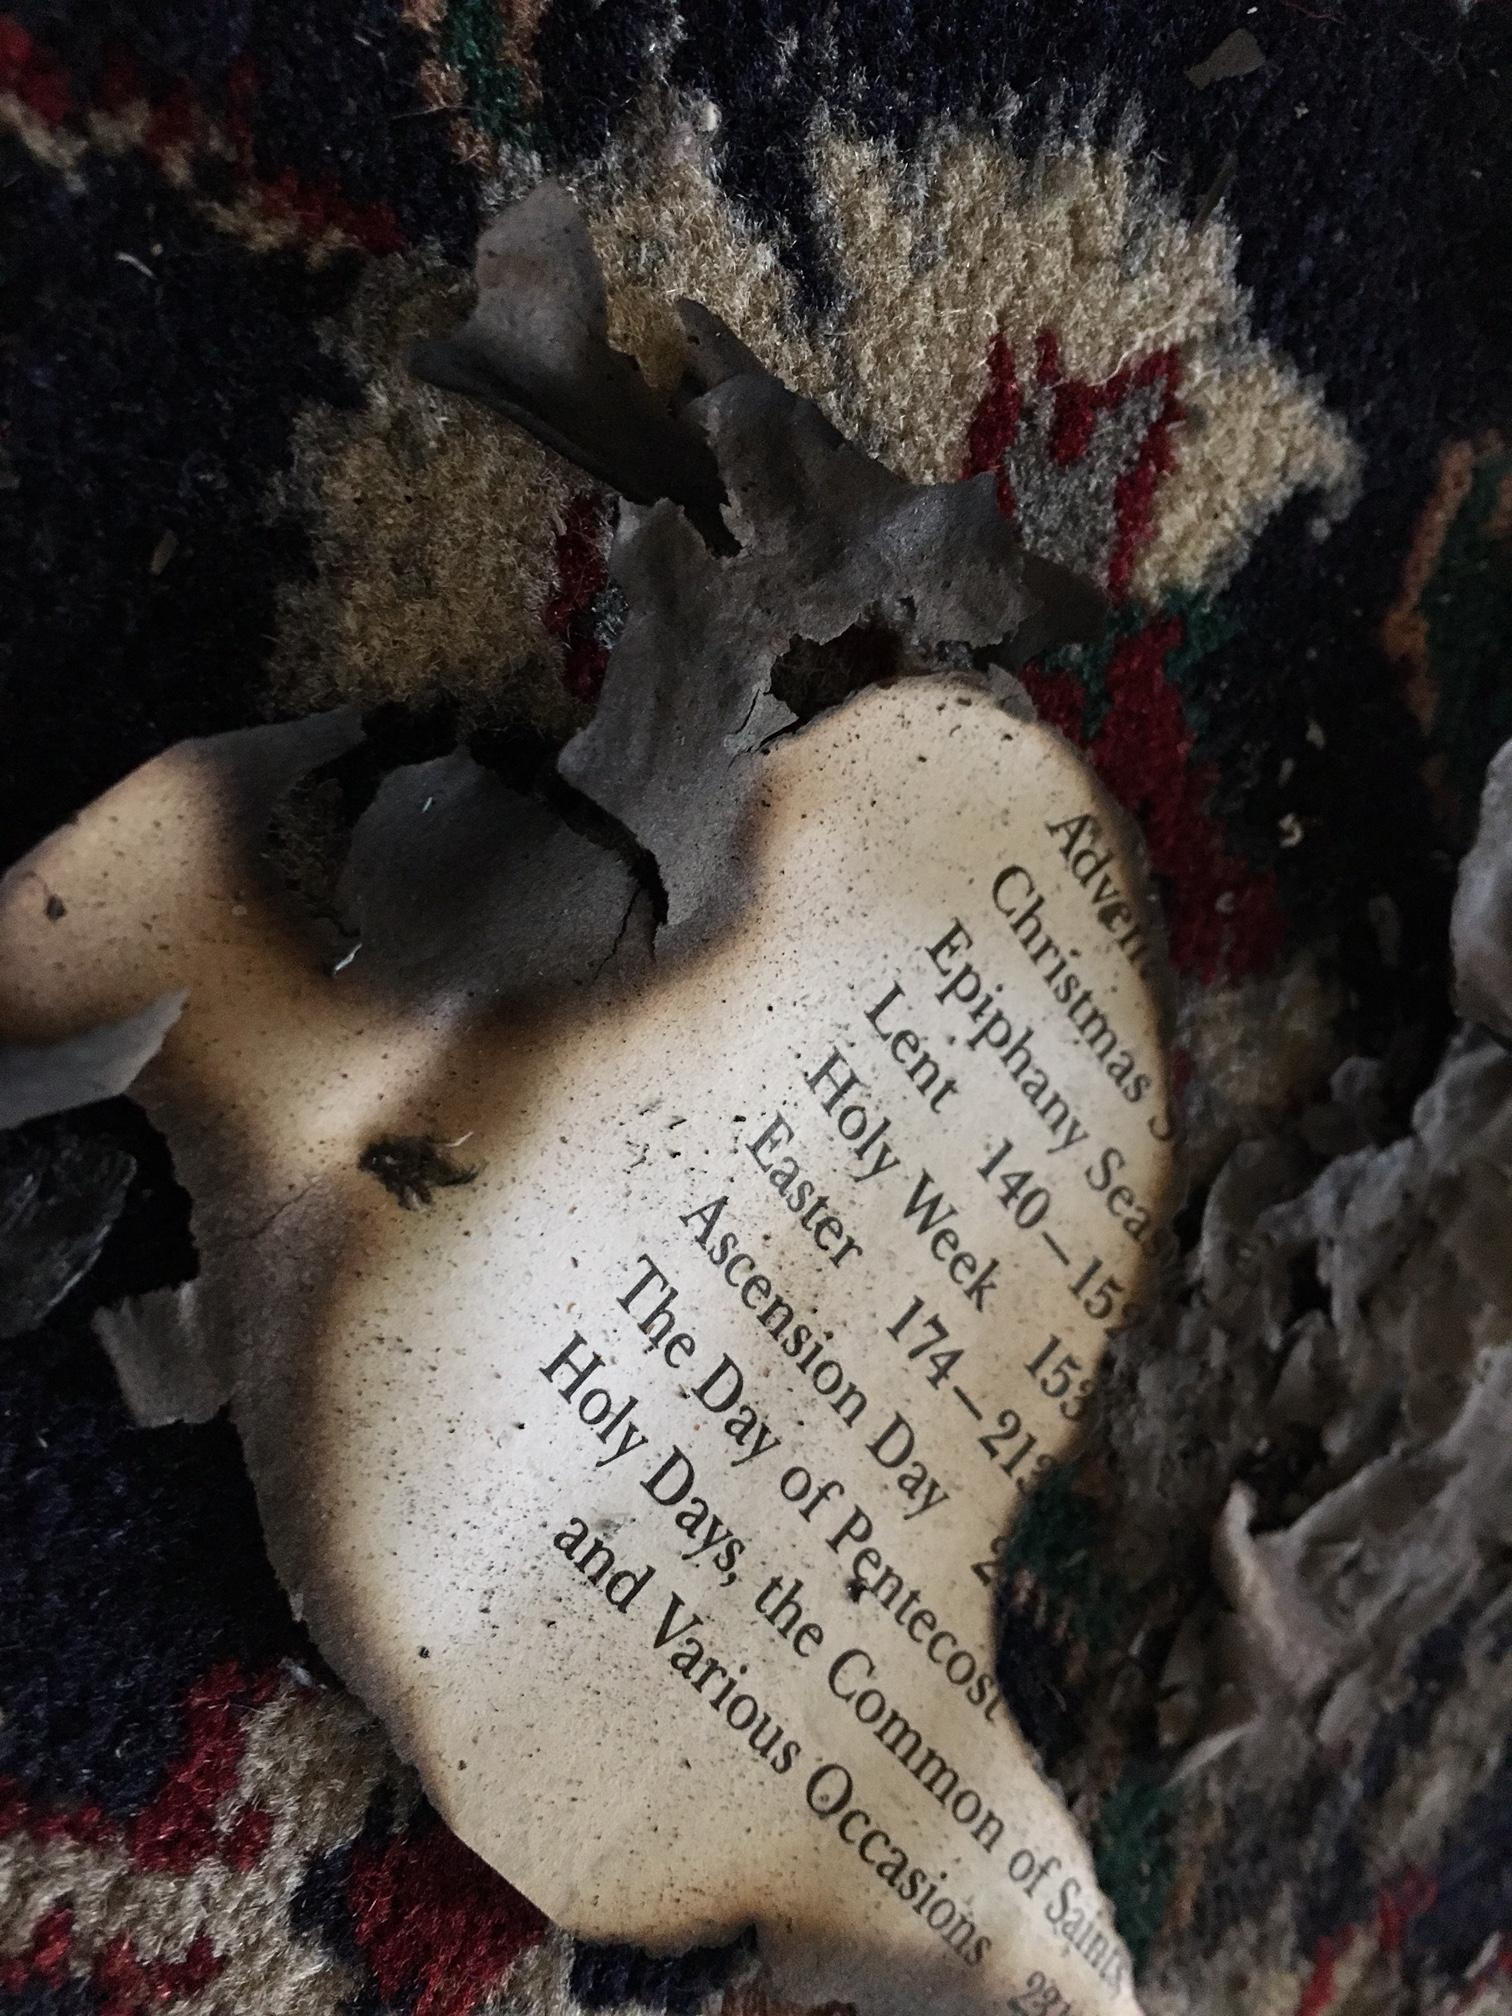 Charred scripture remains from altar fire at St. John's Episcopal Church. (WCHS/WVAH)